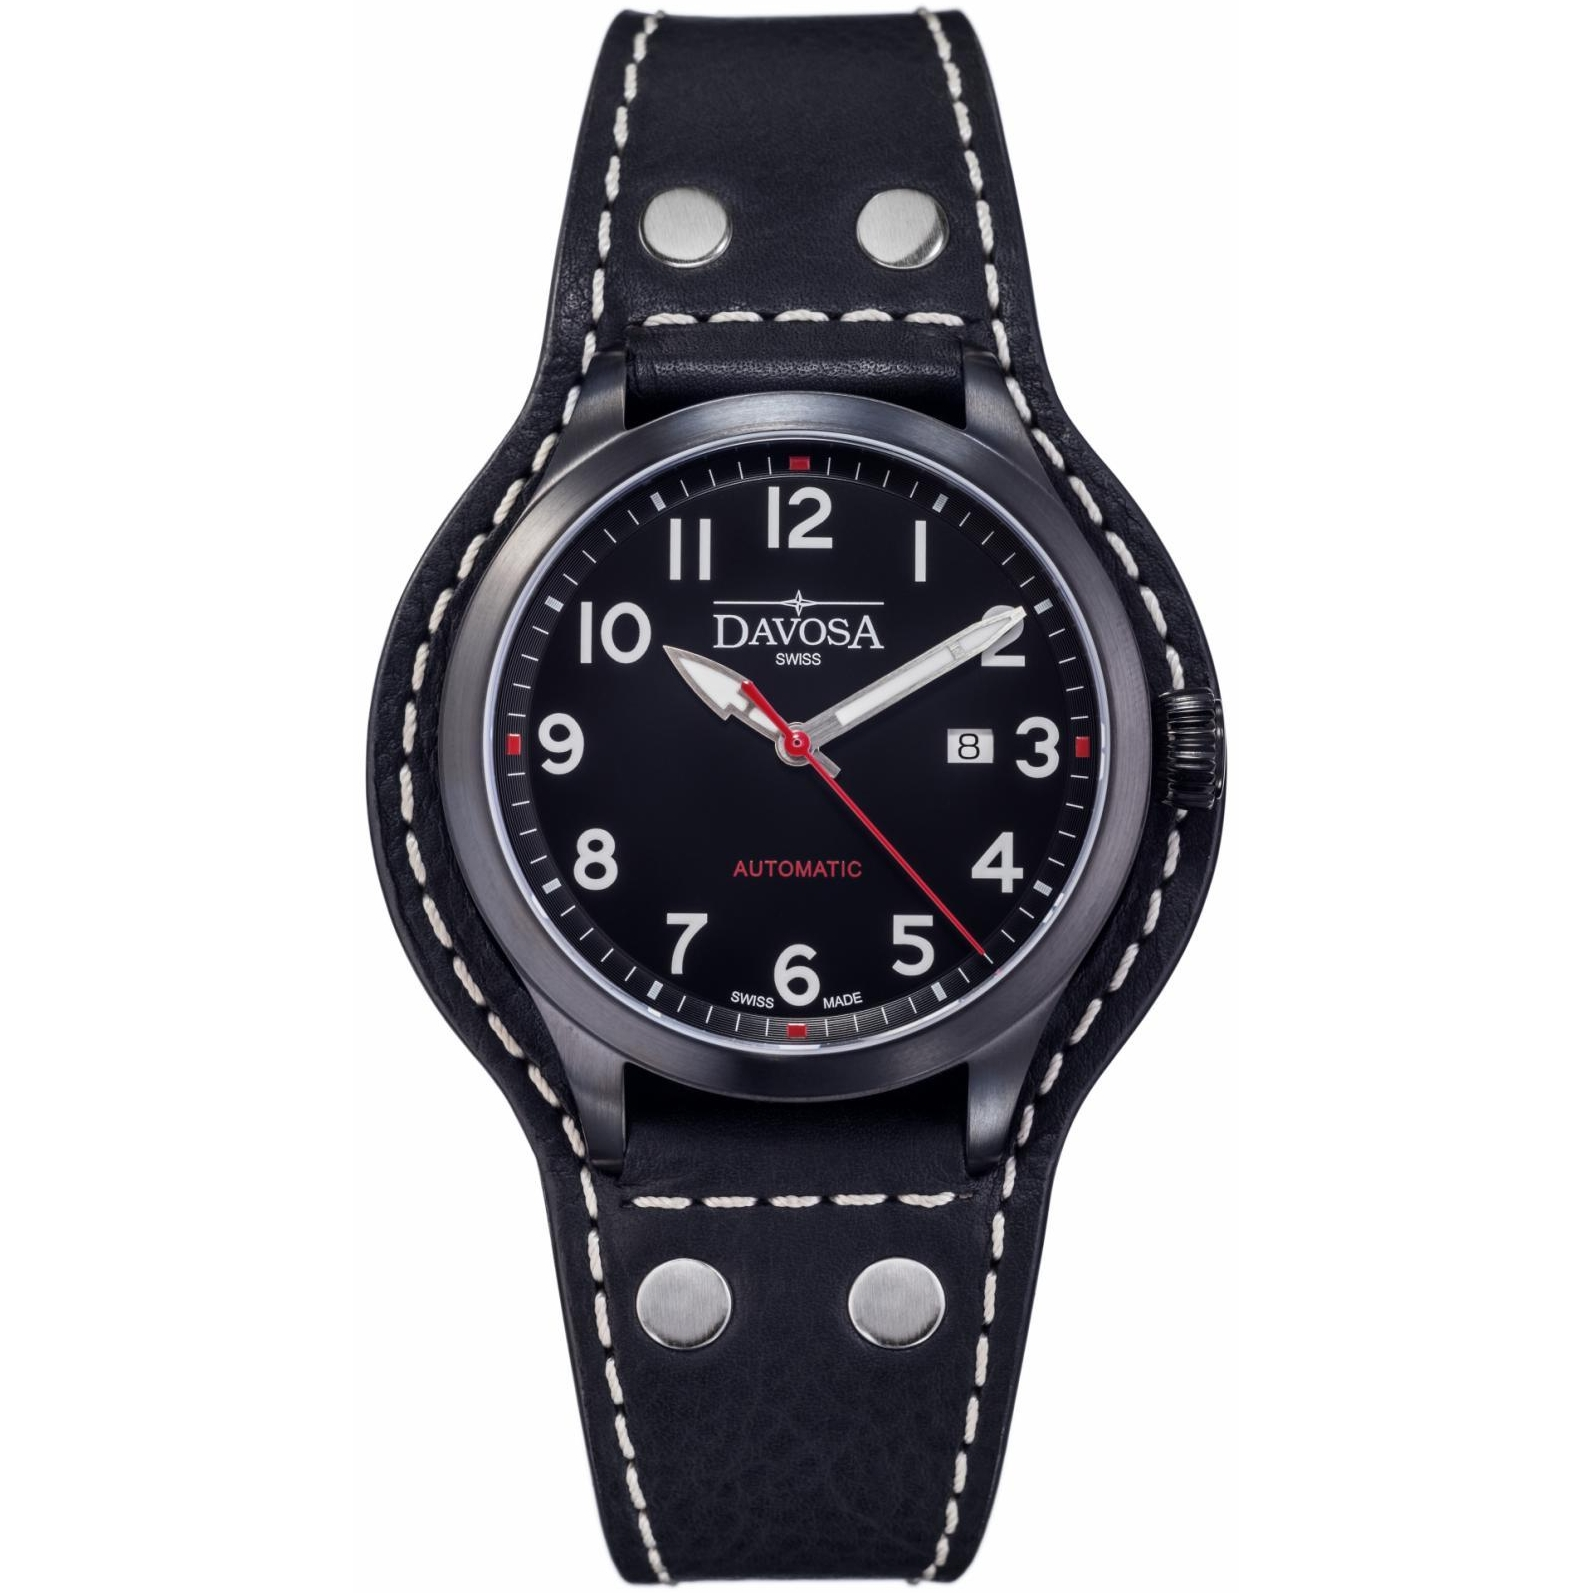 leather swiss defender uk on watch pvd automatic image watches chronograph strap air black